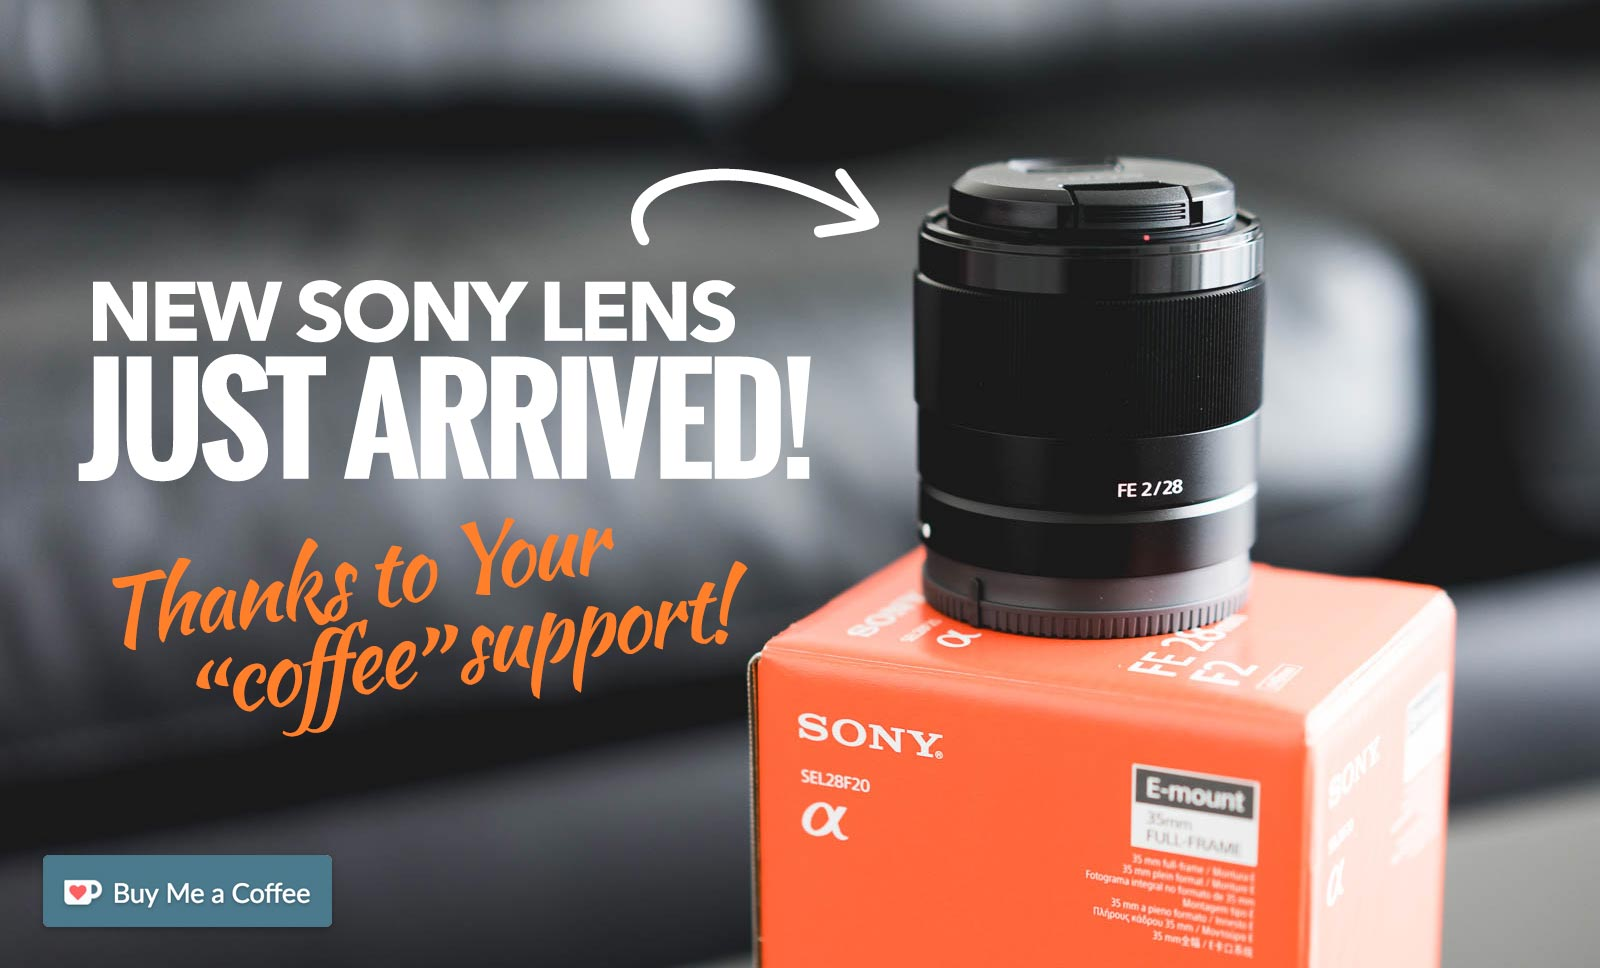 picjumbo BLOG: The new Sony lens just arrived — thanks to You!